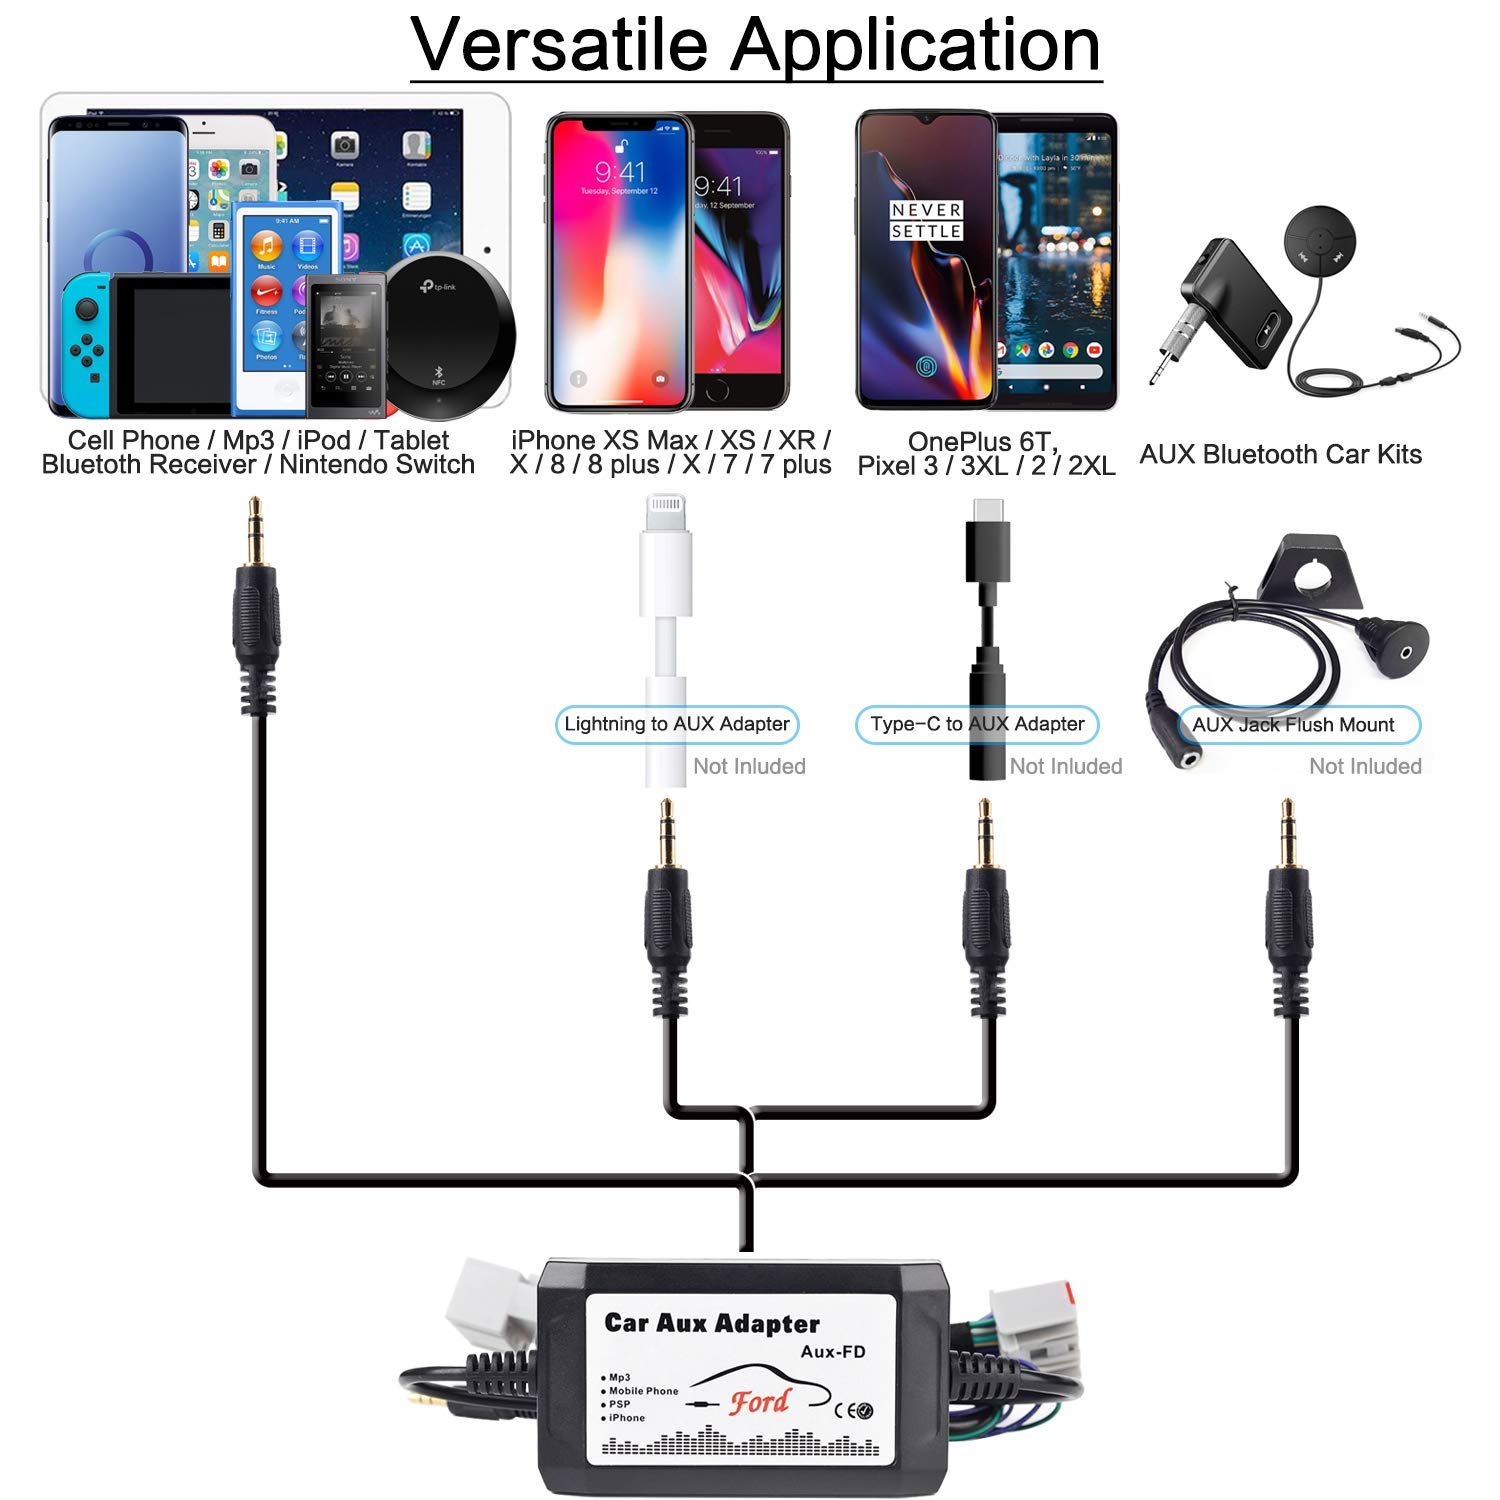 Apps2car Car Stereo Aux Adapter Audio Cable For Ford Wire Harness Bmw Phone Cradle F150 F250 F350 F550 Edge Expedition Explorer Focus Freestyle Mustang Sport Trac Lincoln Mercury Cd Auxiliary Input Jack Adapters Cell Phones